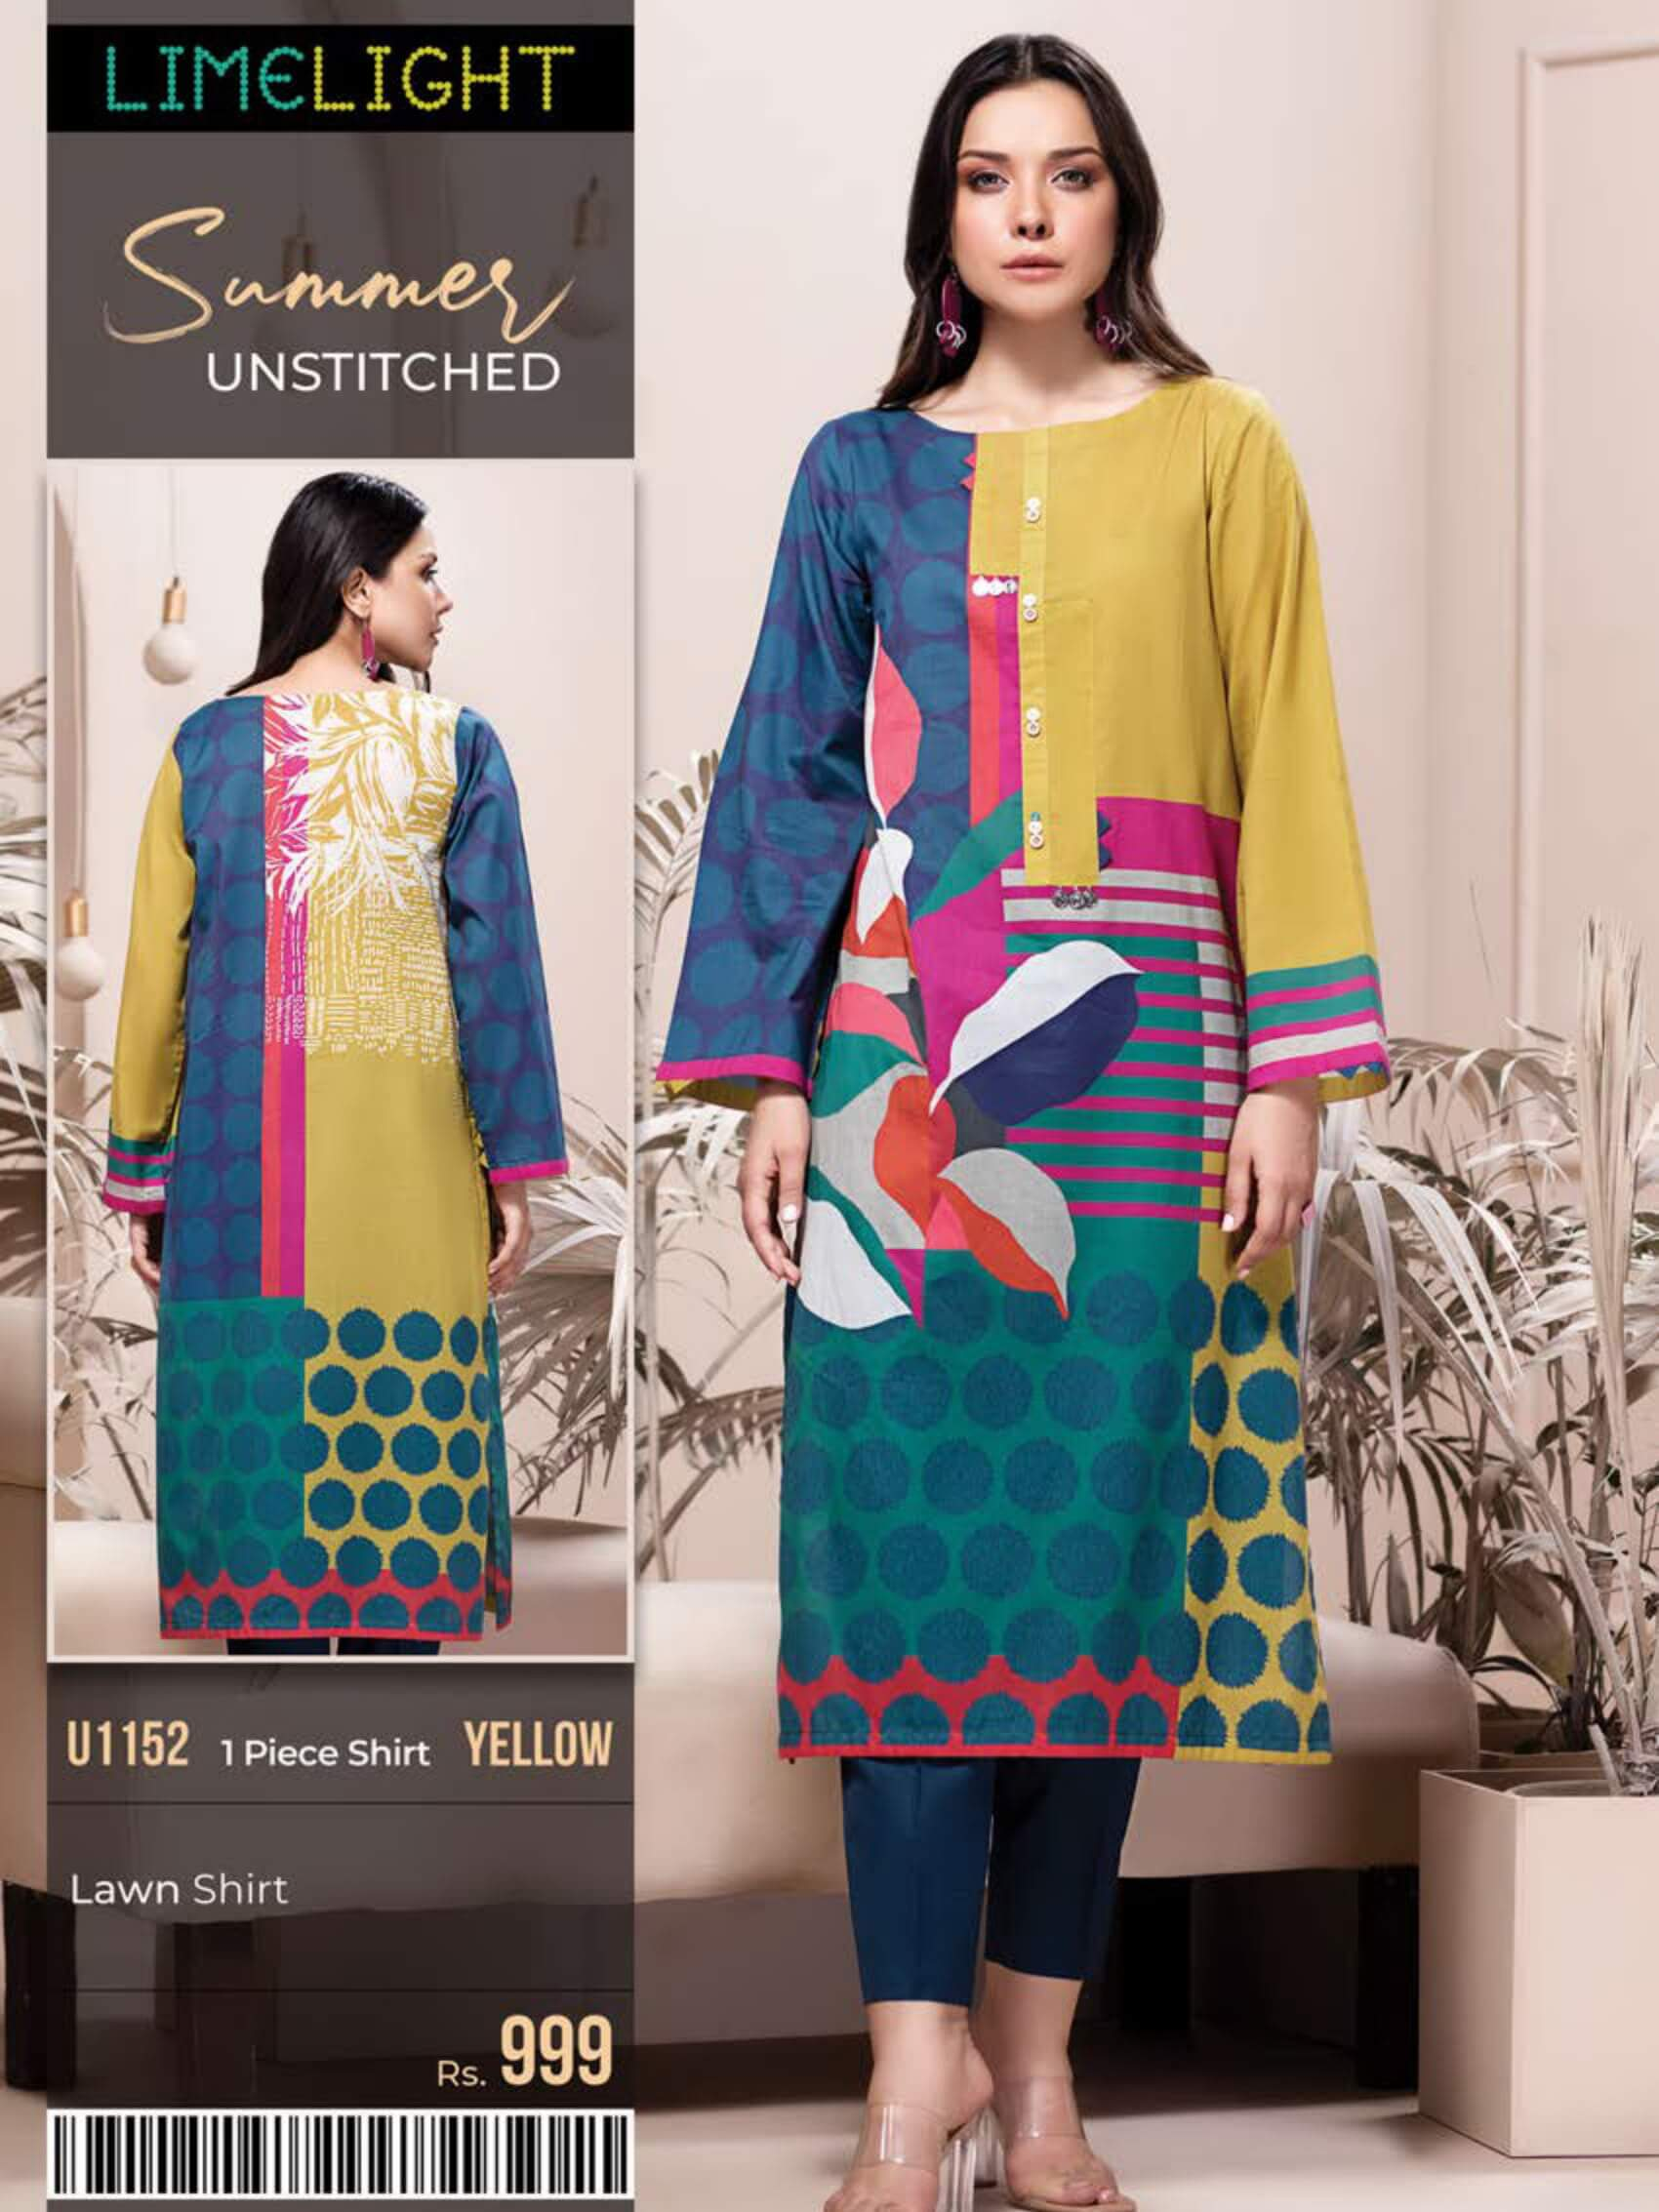 Limelight Lawn Shirt Summer Unstitched 2020 U1152 Yellow - FaisalFabrics.pk